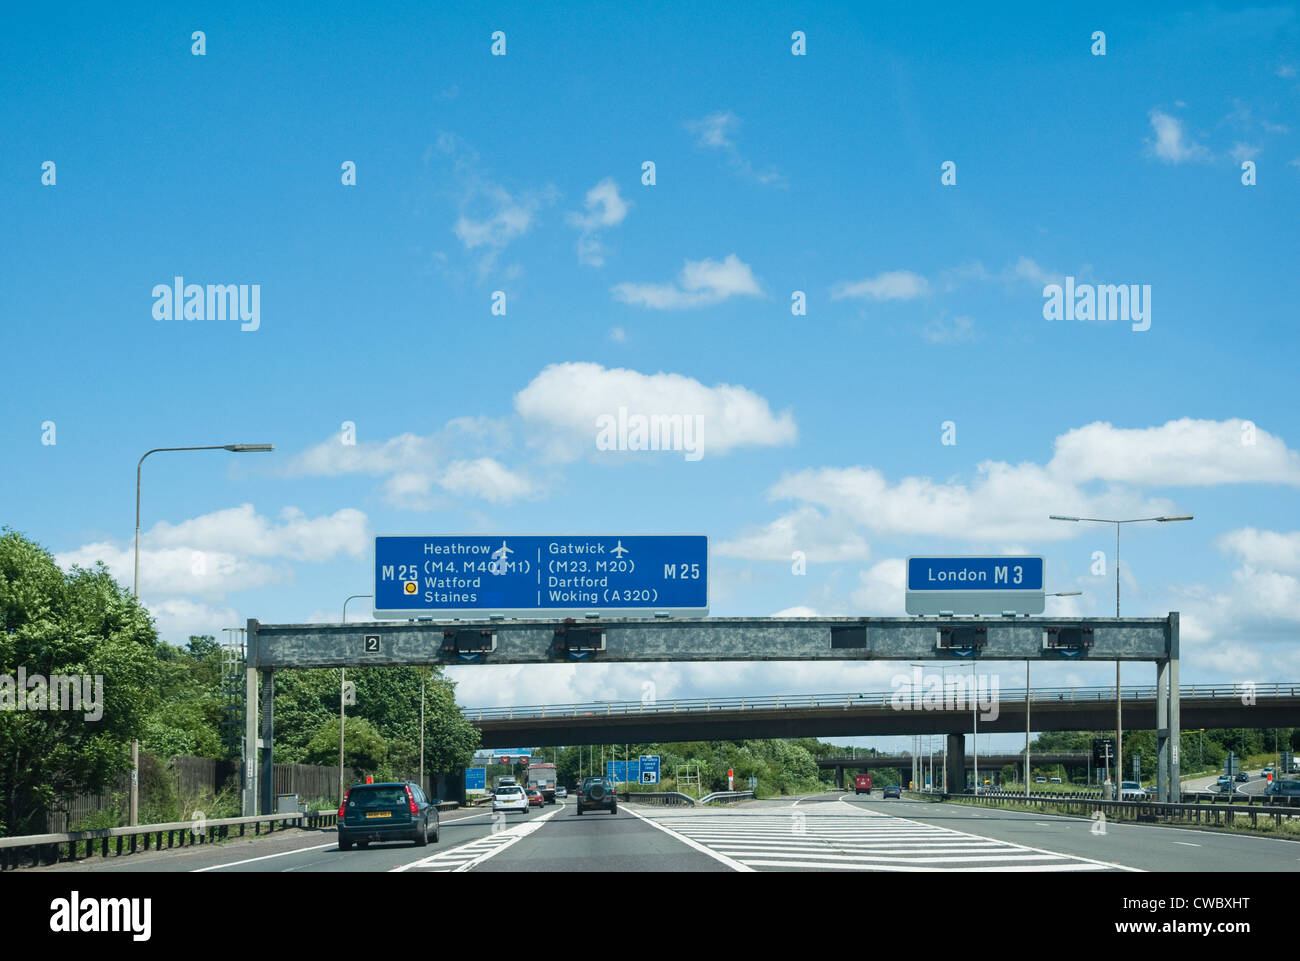 M25 Motorway signs - with separating lanes for either Heathrow and Gatwick Airports to the left - or London M3 to - Stock Image